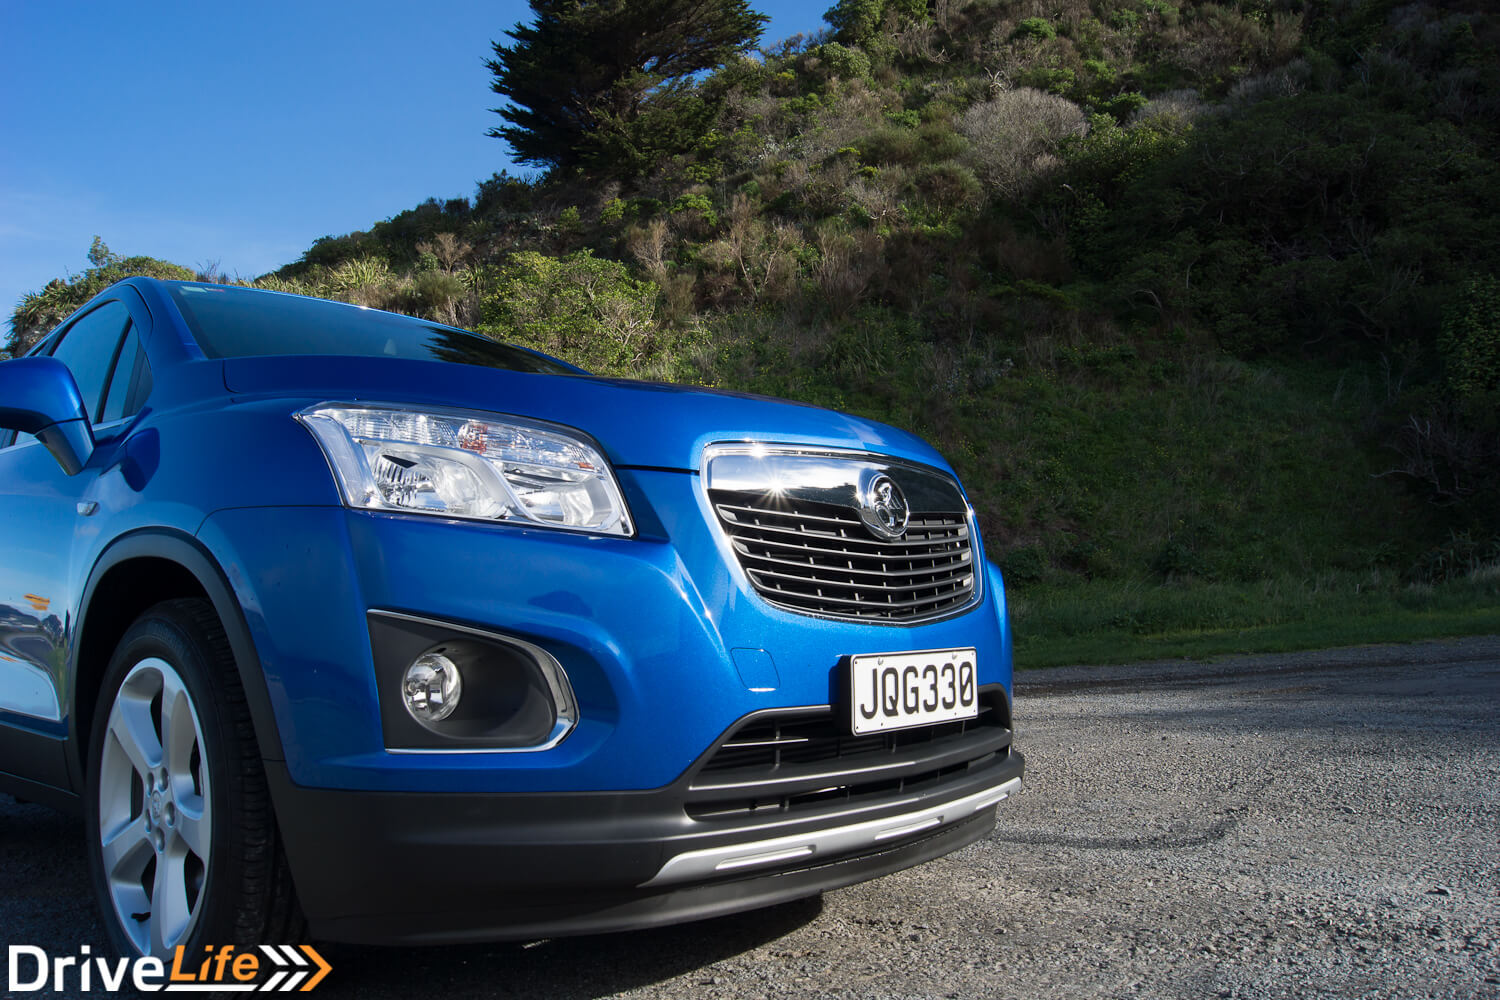 Holden Trax LTZ - Car Review - The Small Big Blue SUV - DriveLife